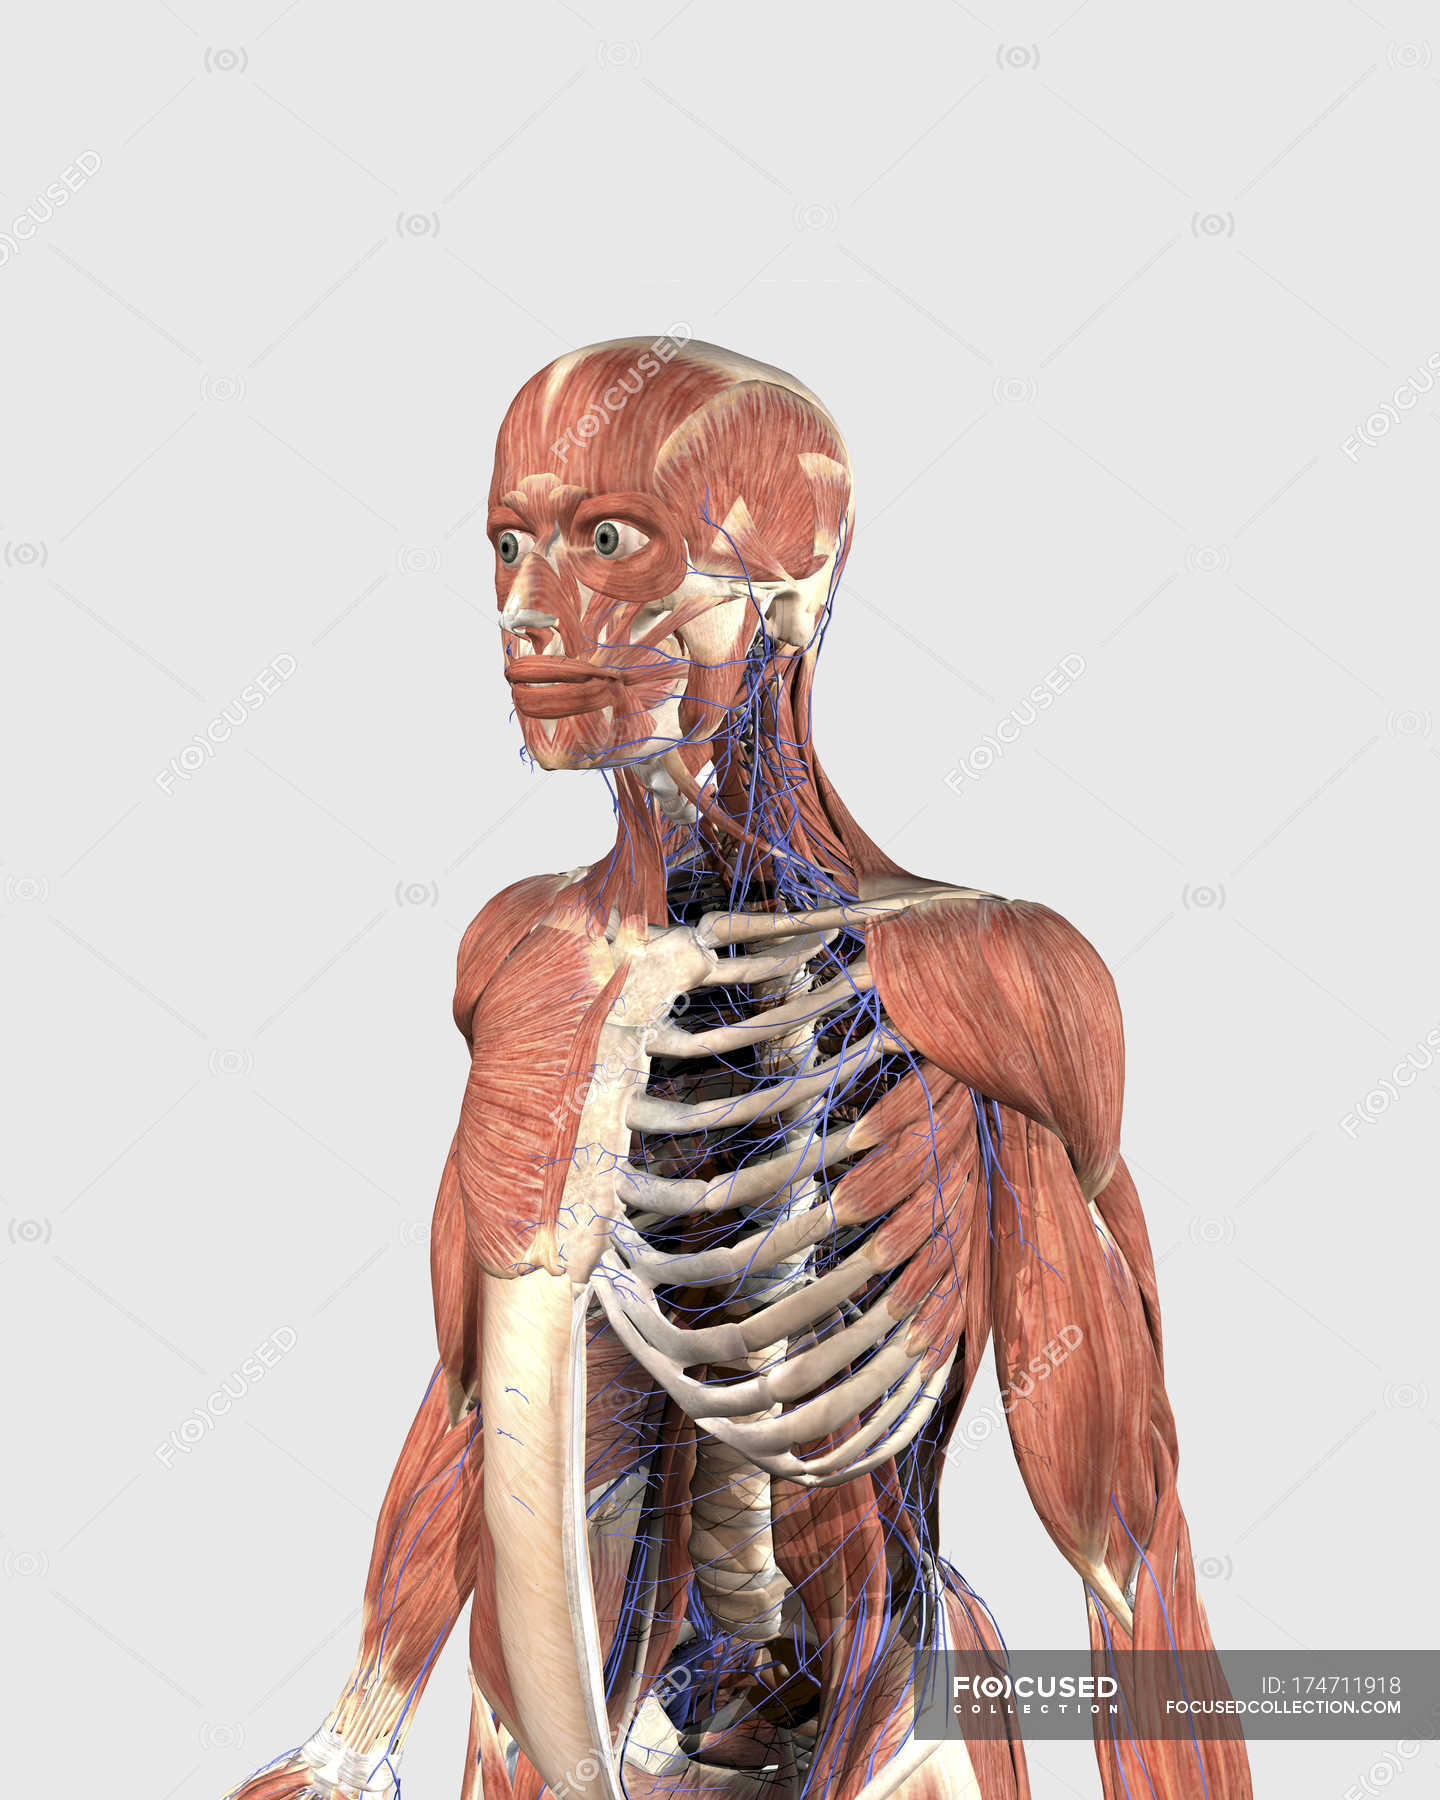 Human Upper Body With Muscle Parts Axial Skeleton And Veins Stock